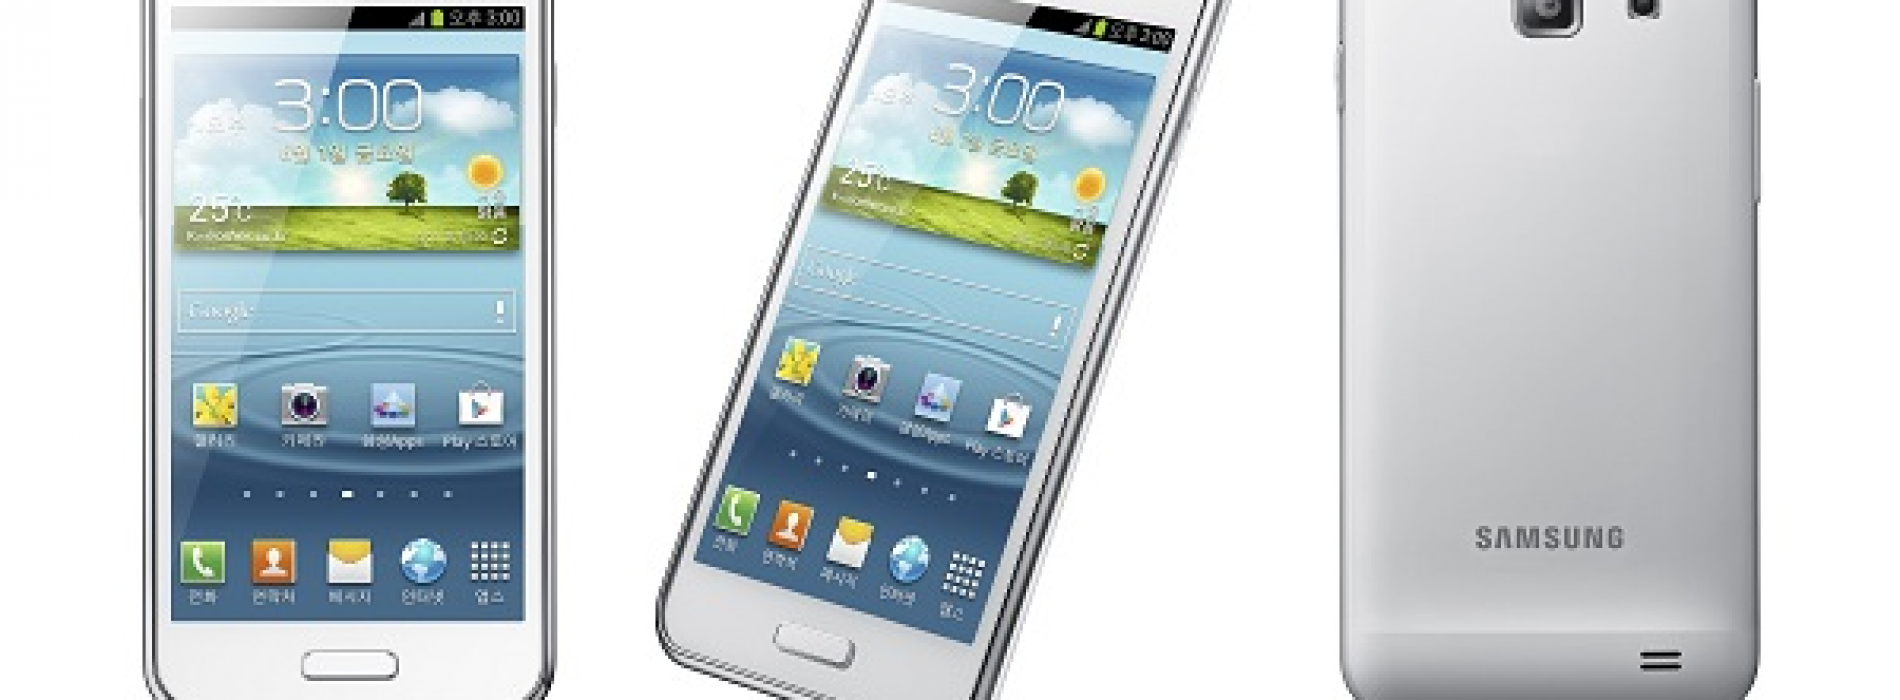 Samsung intros Galaxy R Style for Korea